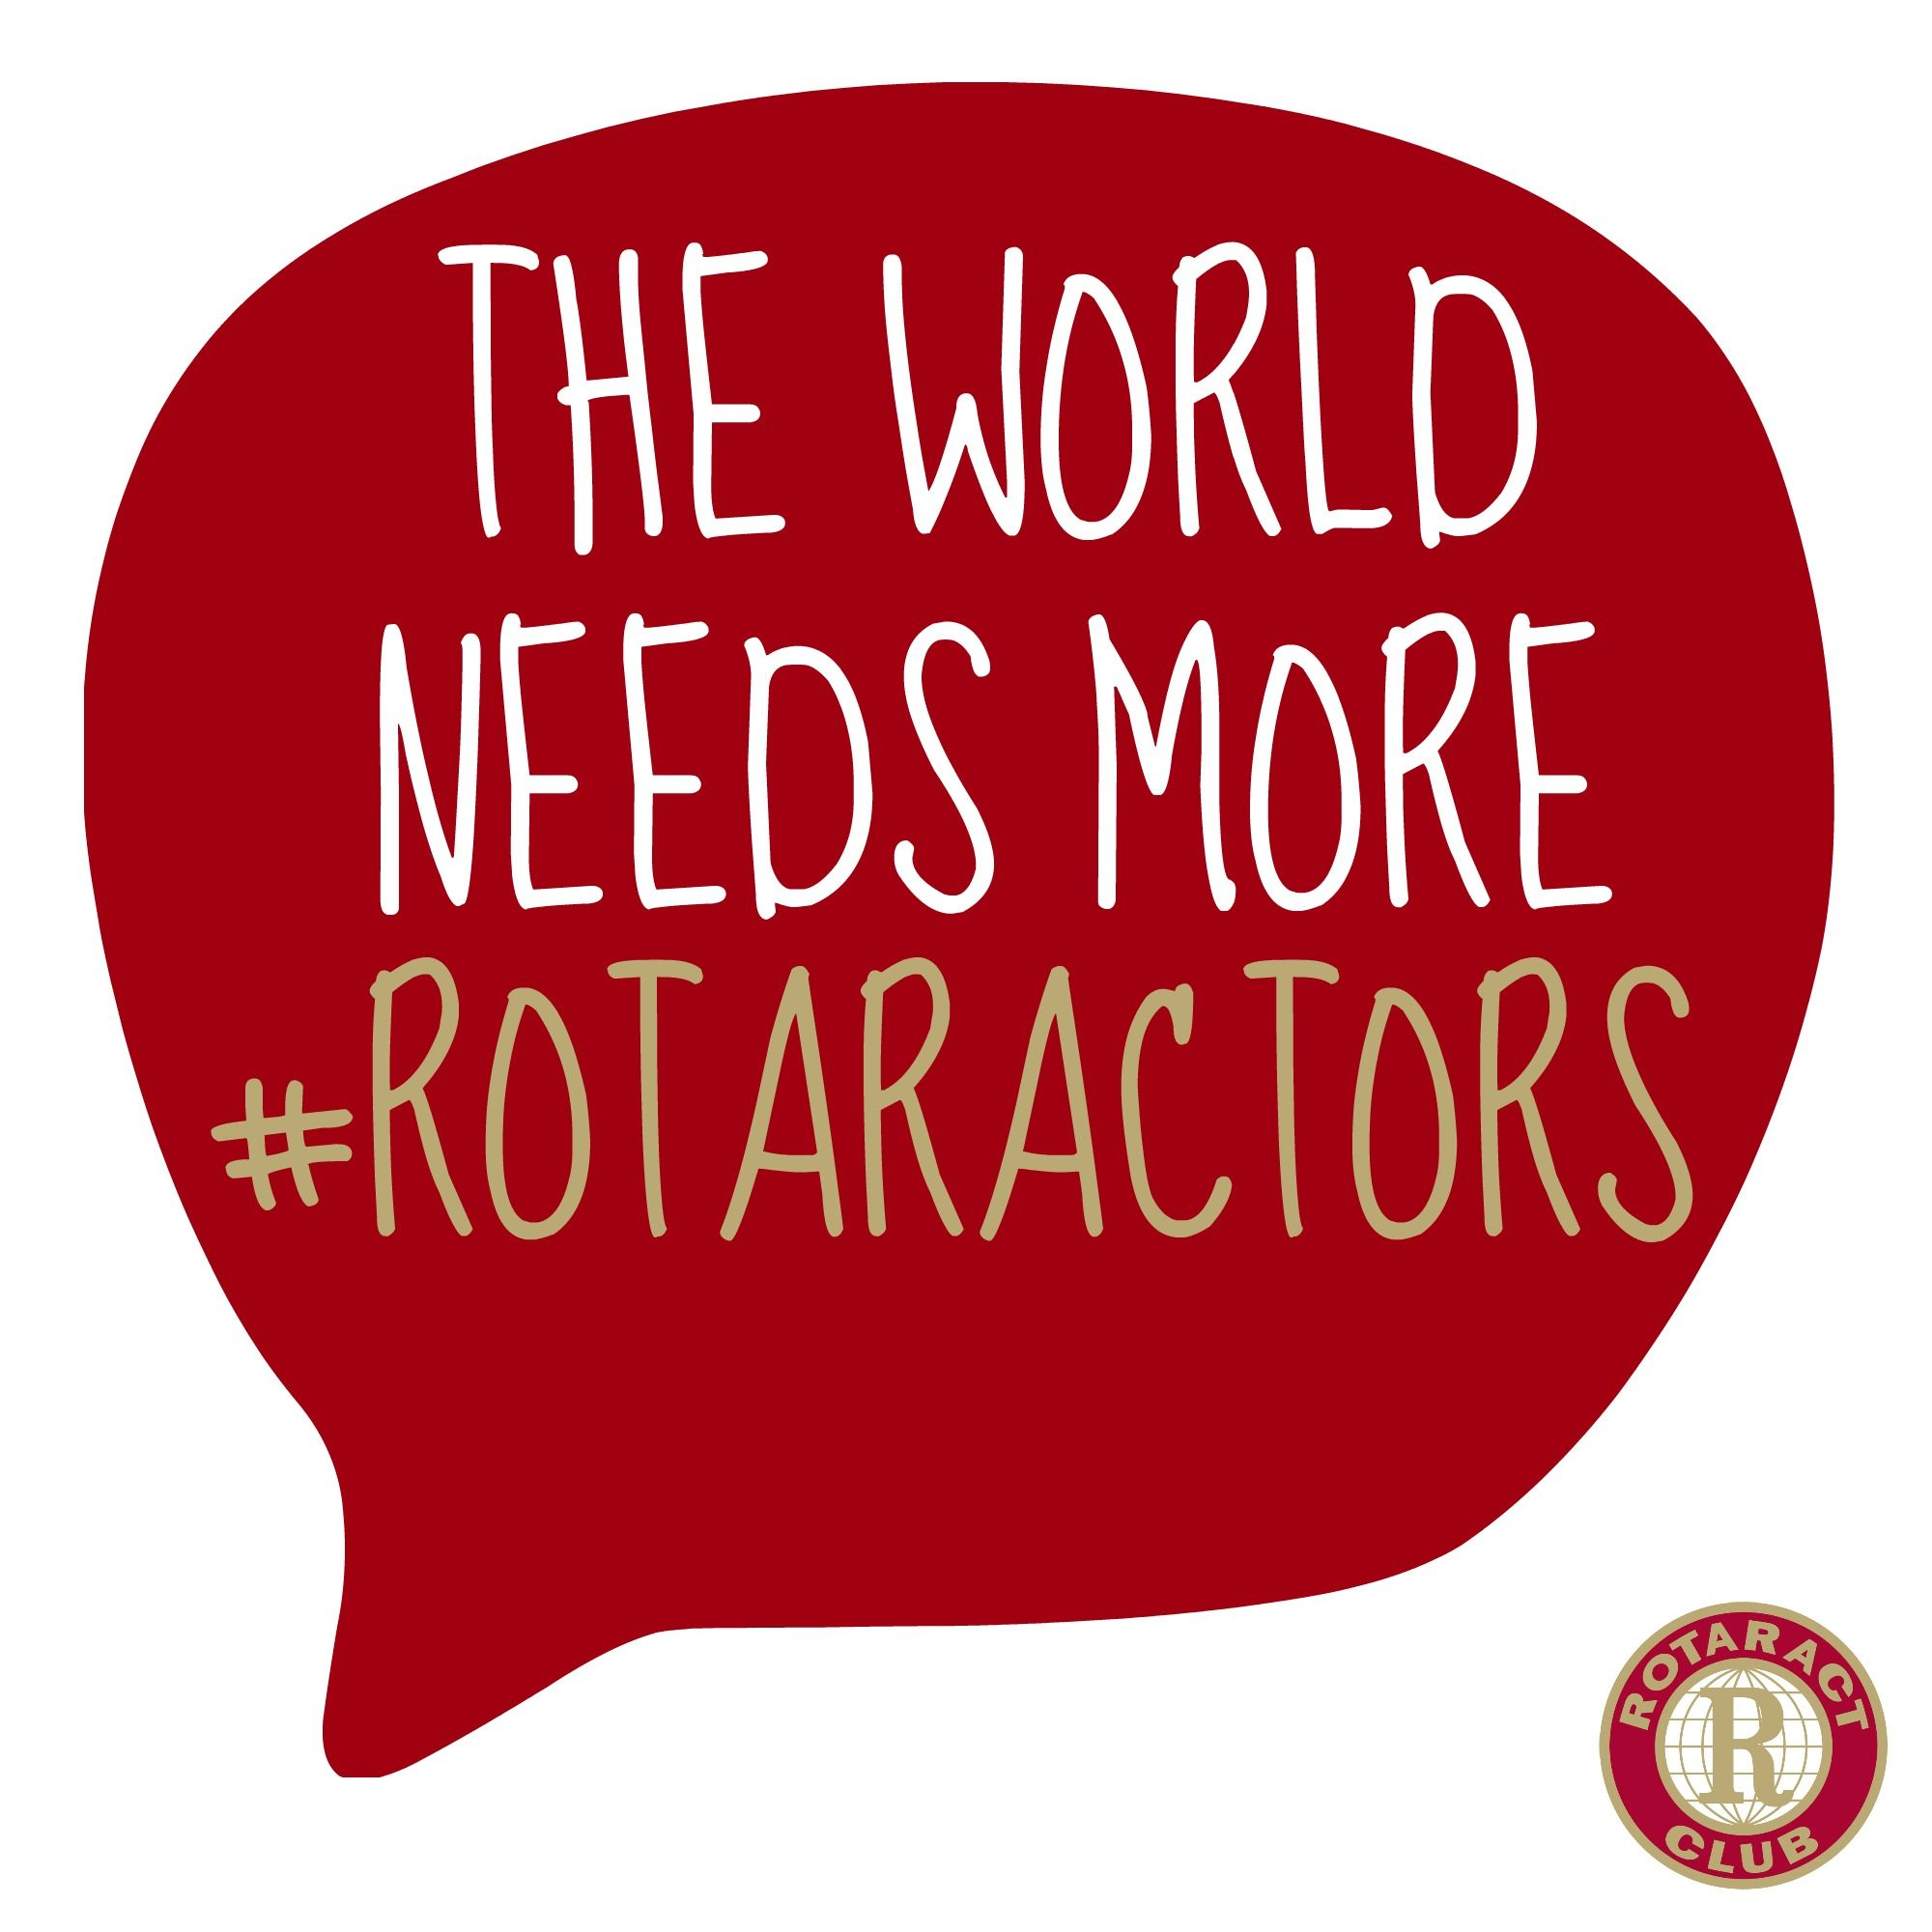 The world needs more Rotaractors #rotaractors #rotaract NEW VERSION  AVAILABLE WITH NEW LOGO | Rotary international, World need, Rotarian